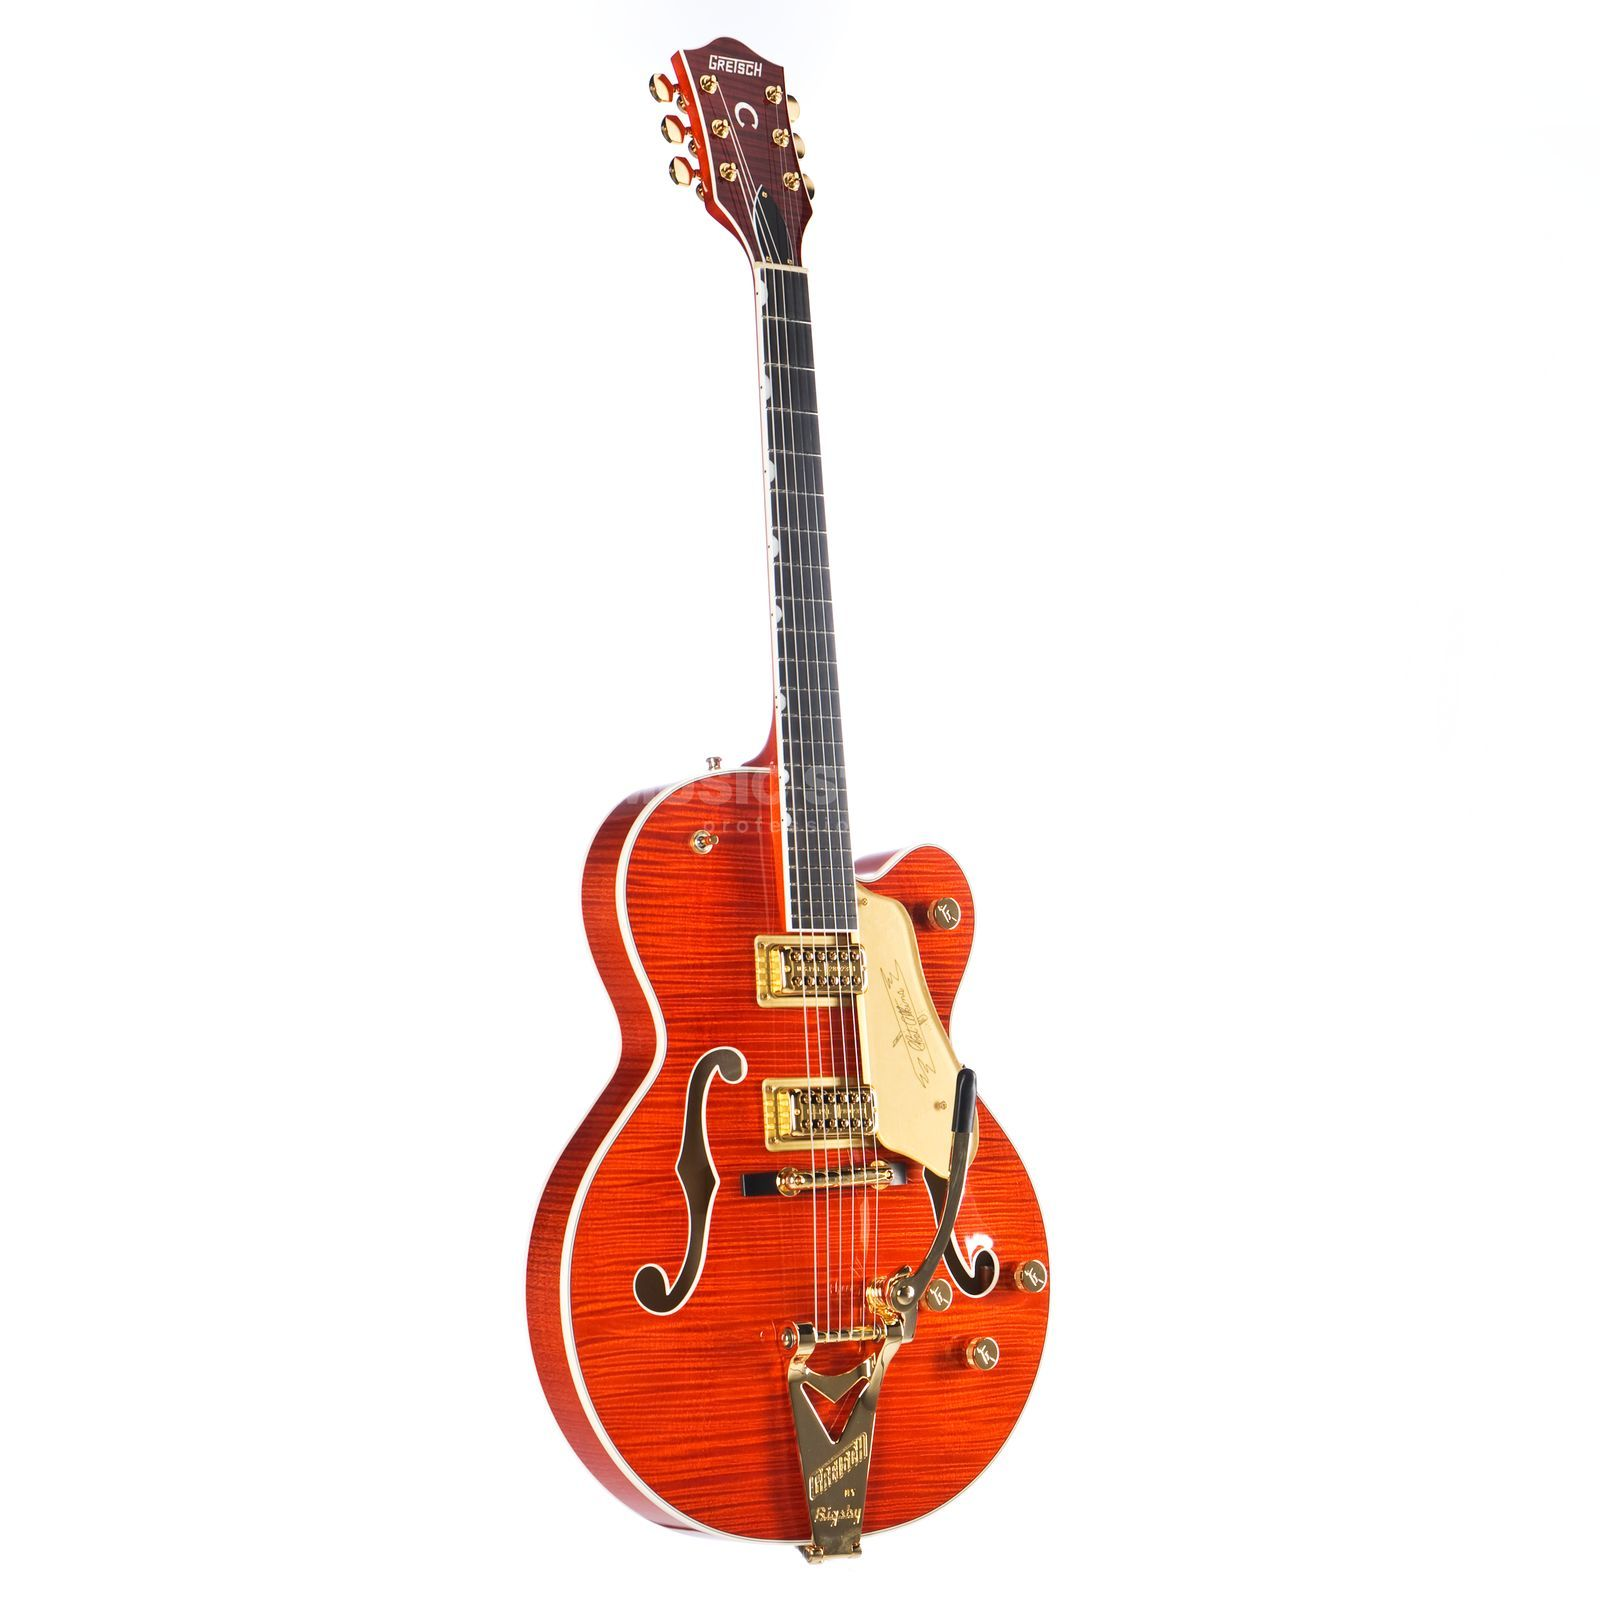 Gretsch G6120TFM Players Edition Nashville Bigsby Flame Maple Orange Stain Imagem do produto